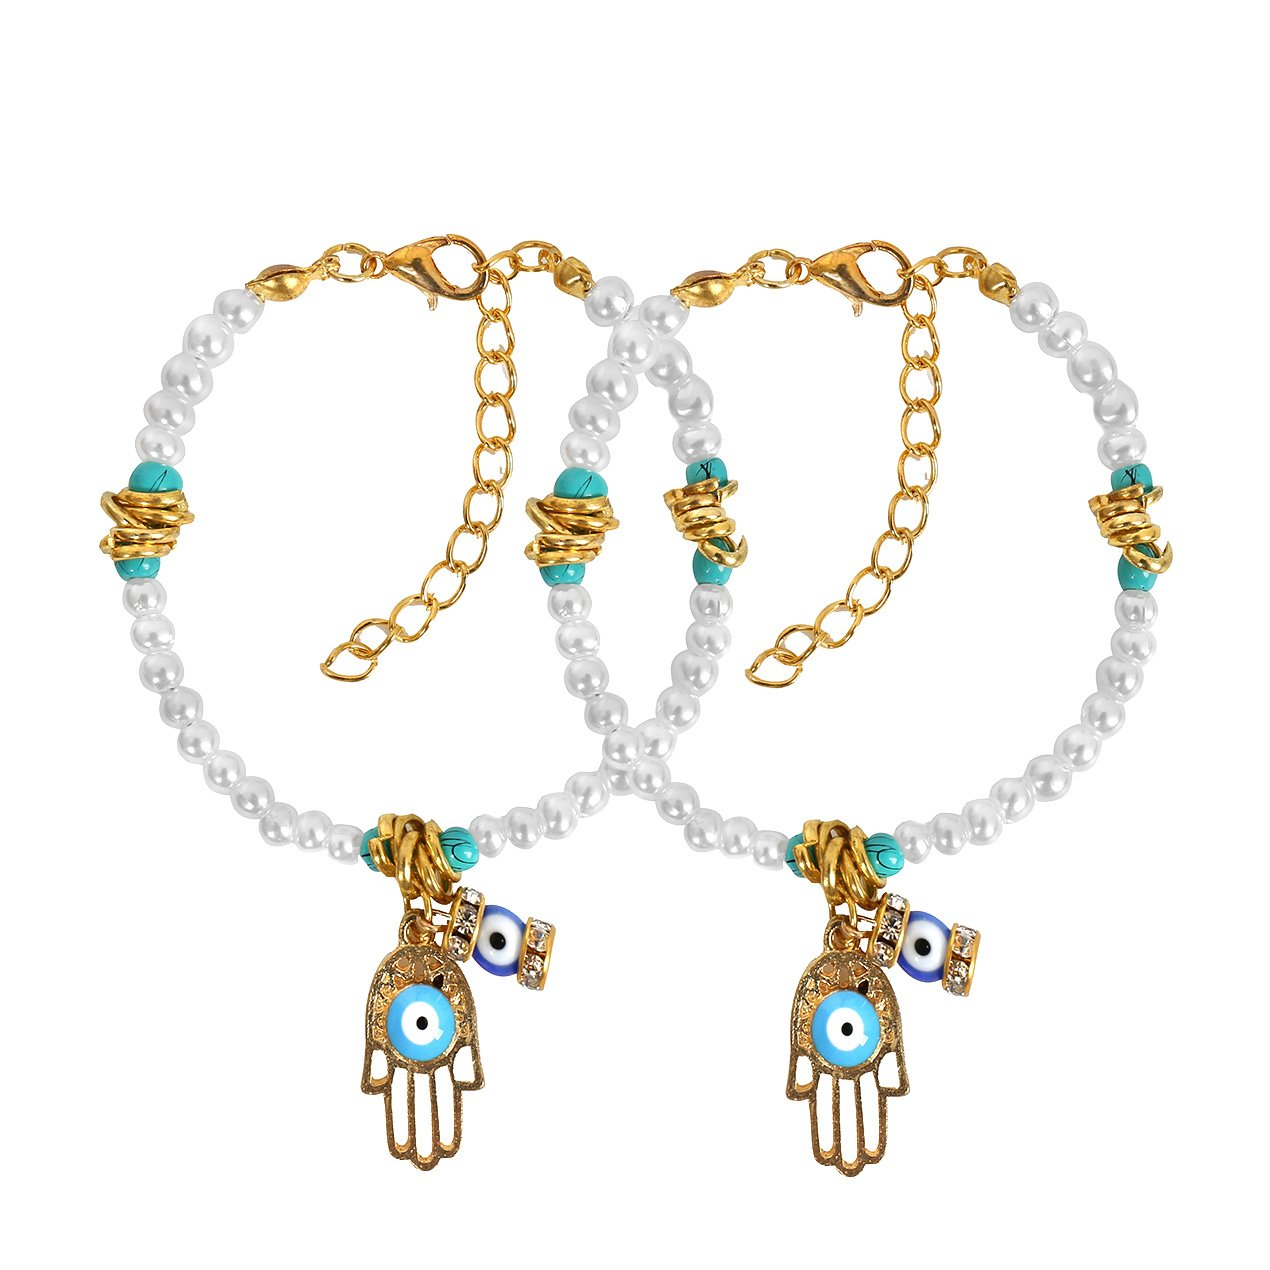 Evil Eye Protection Love Couples Amulets Set Hamsa HSimulated Pearls Gold-Tone Charm Bracelets